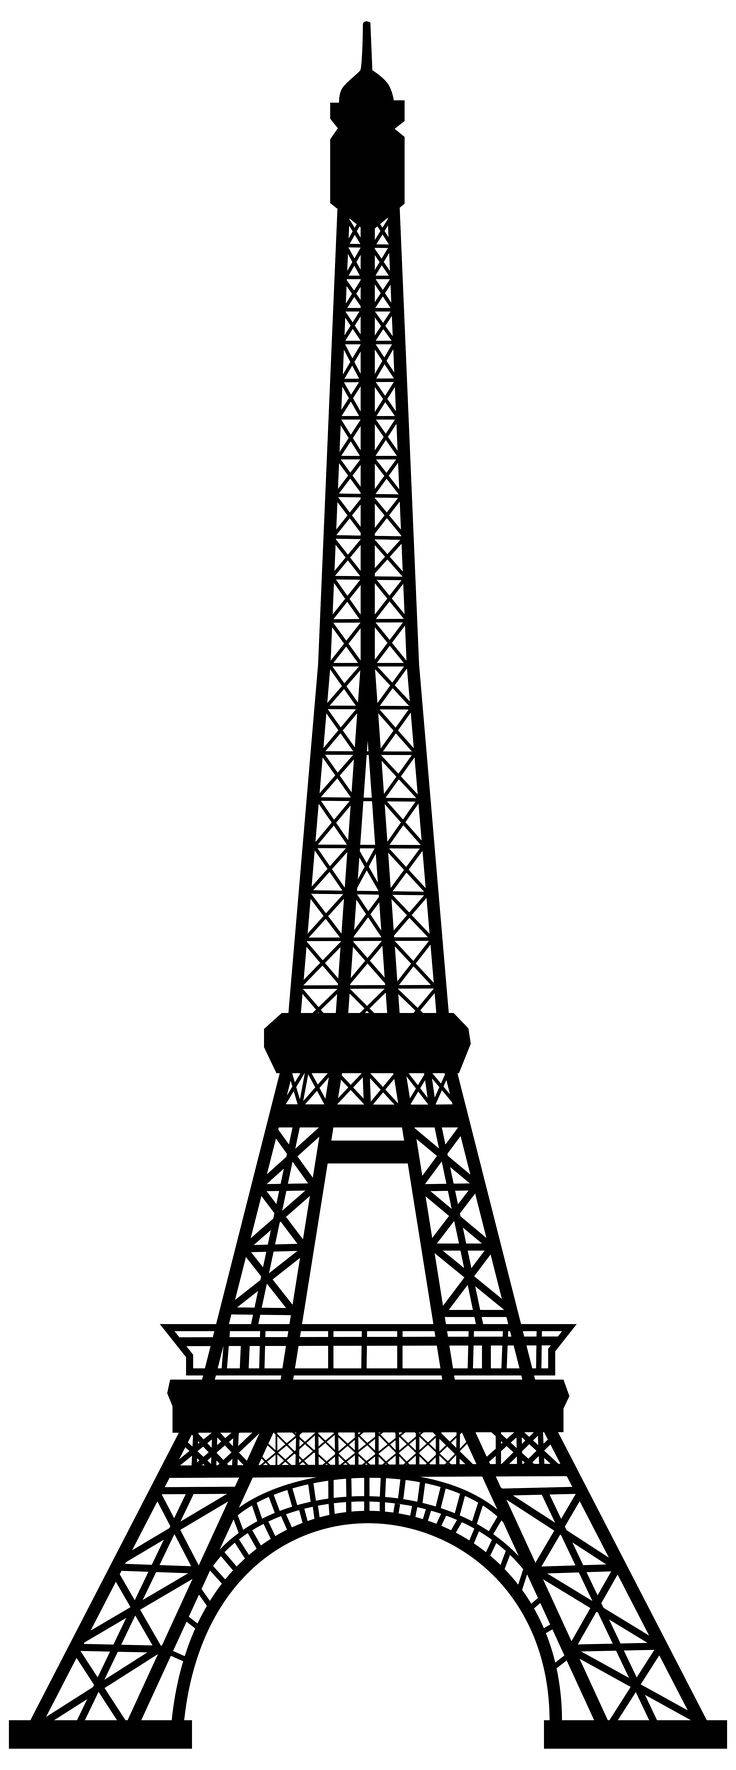 Best 25+ Eiffel Tower Art Ideas On Pinterest | Eiffel Tower In 2017 Eiffel Tower Metal Wall Art (View 6 of 30)